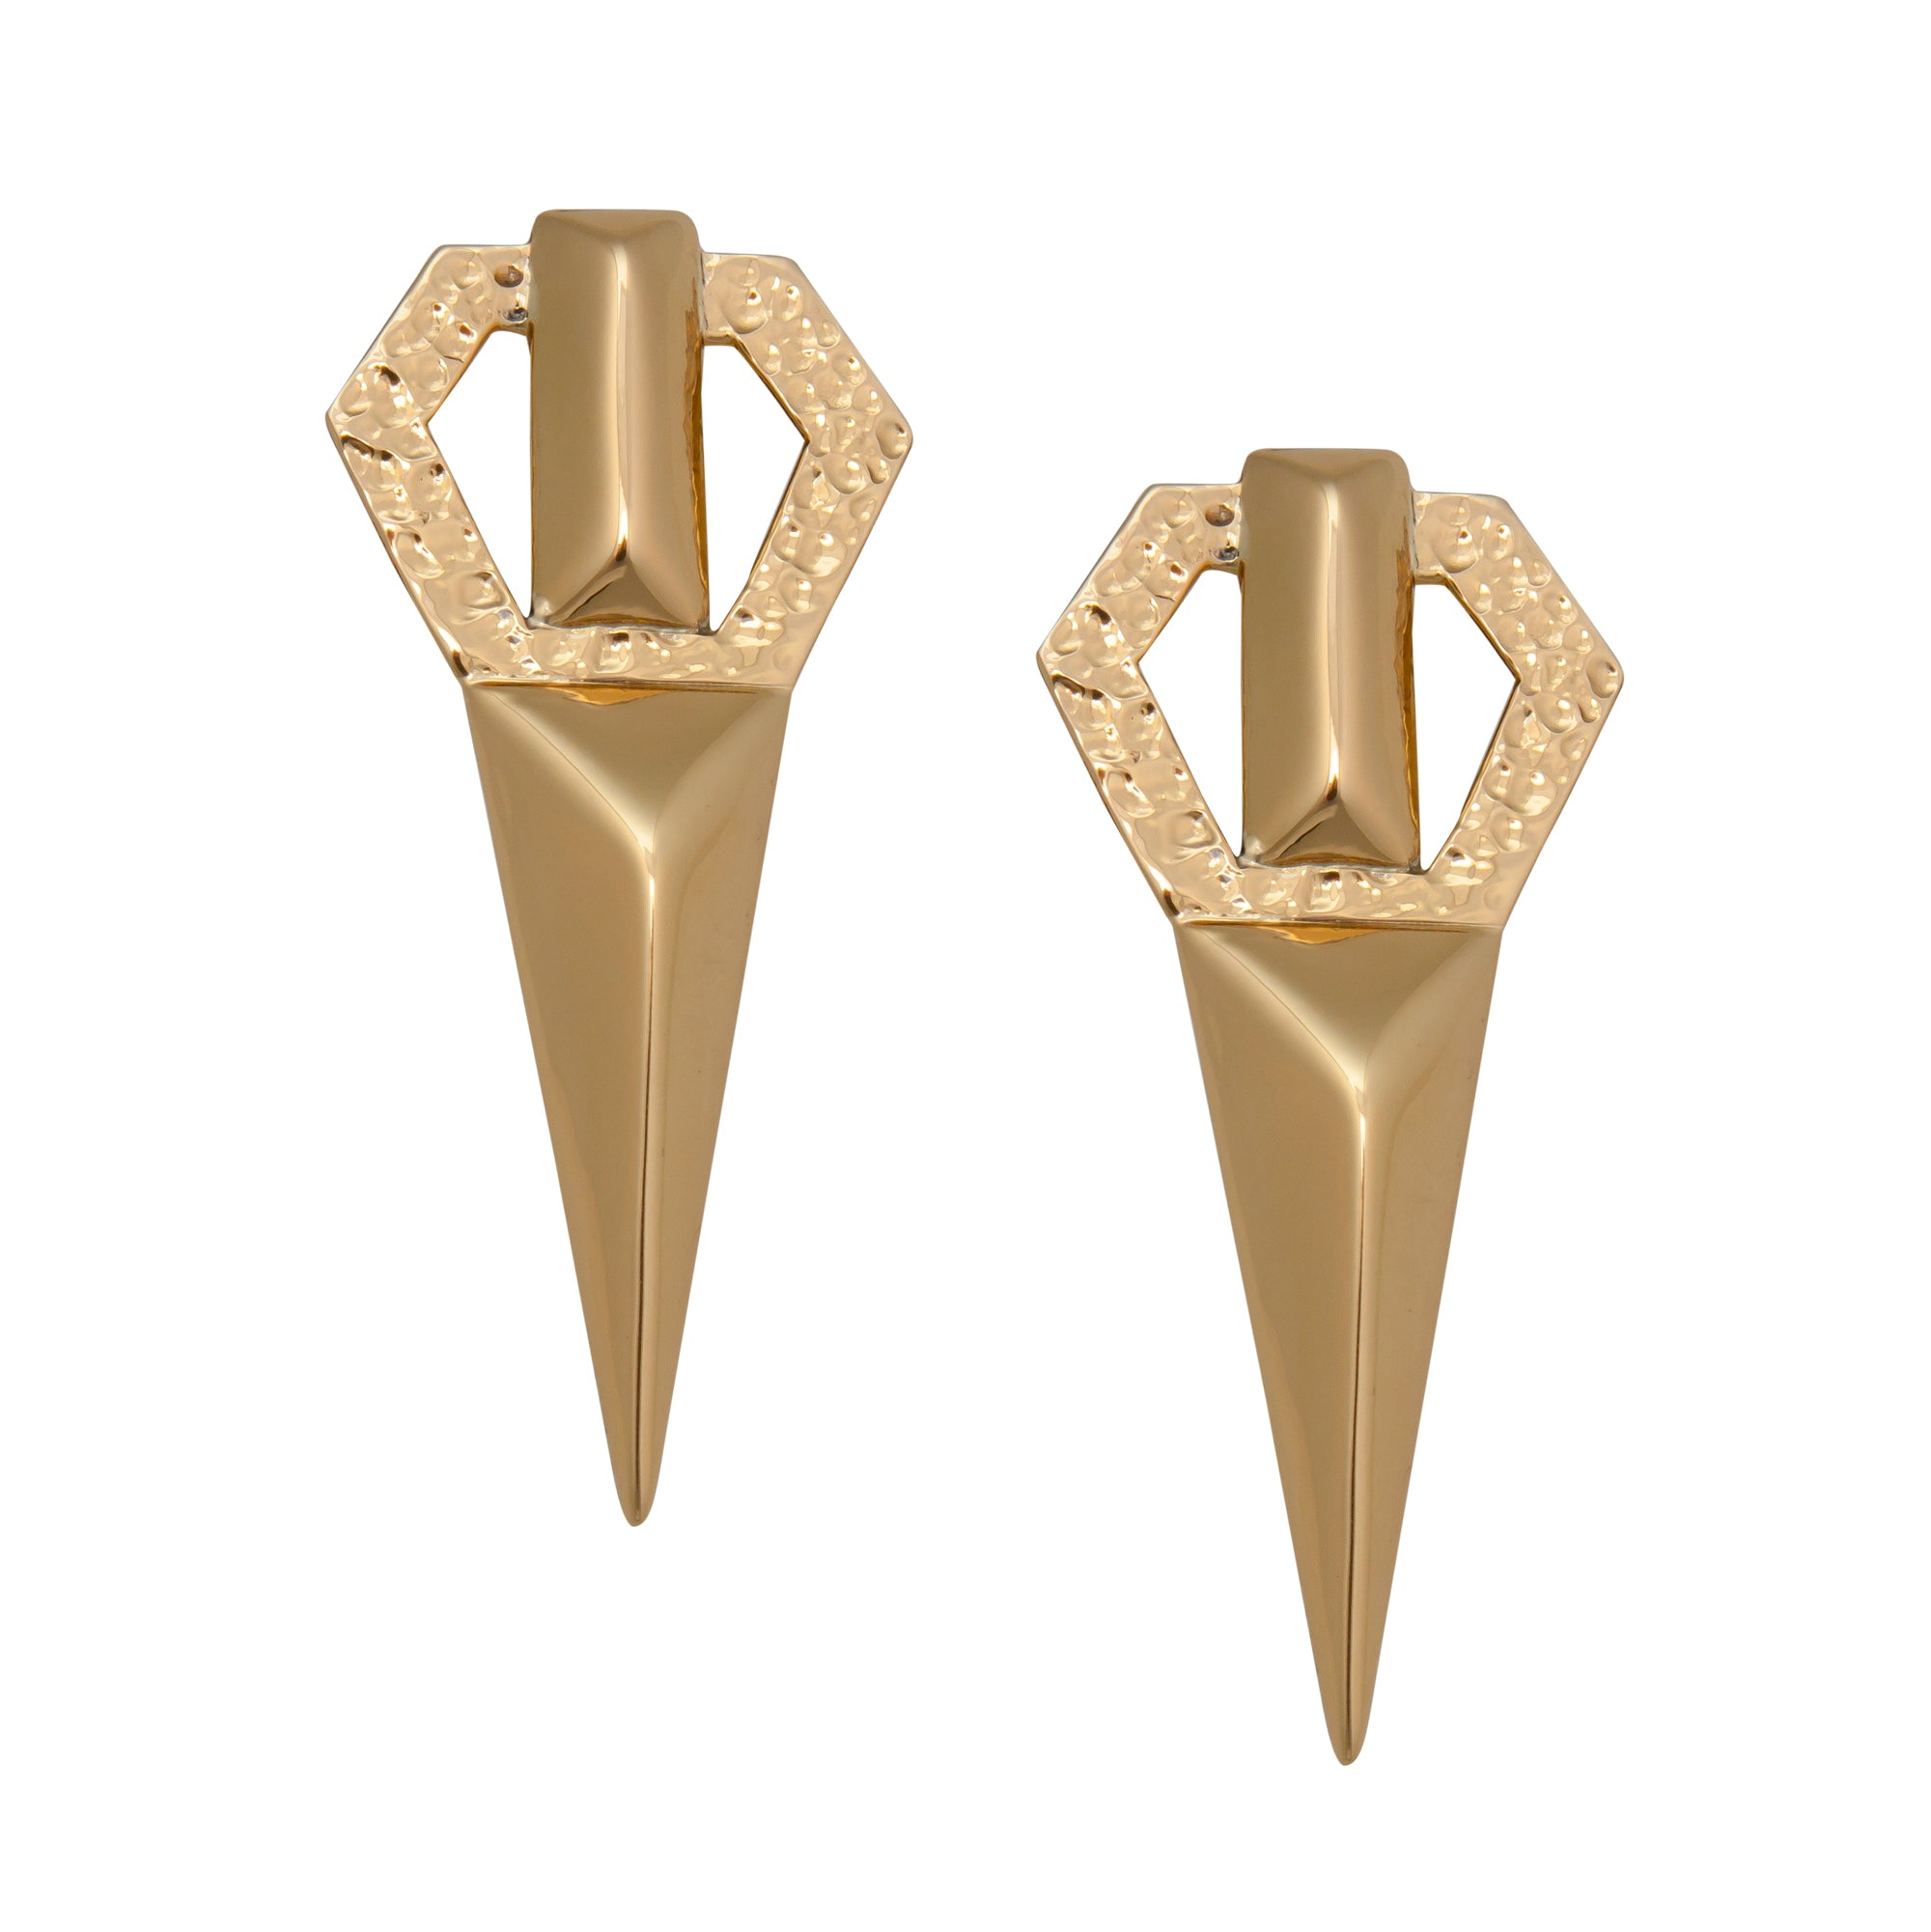 Alchemia Pyramid Point Post Earrings | Charles Albert Jewelry